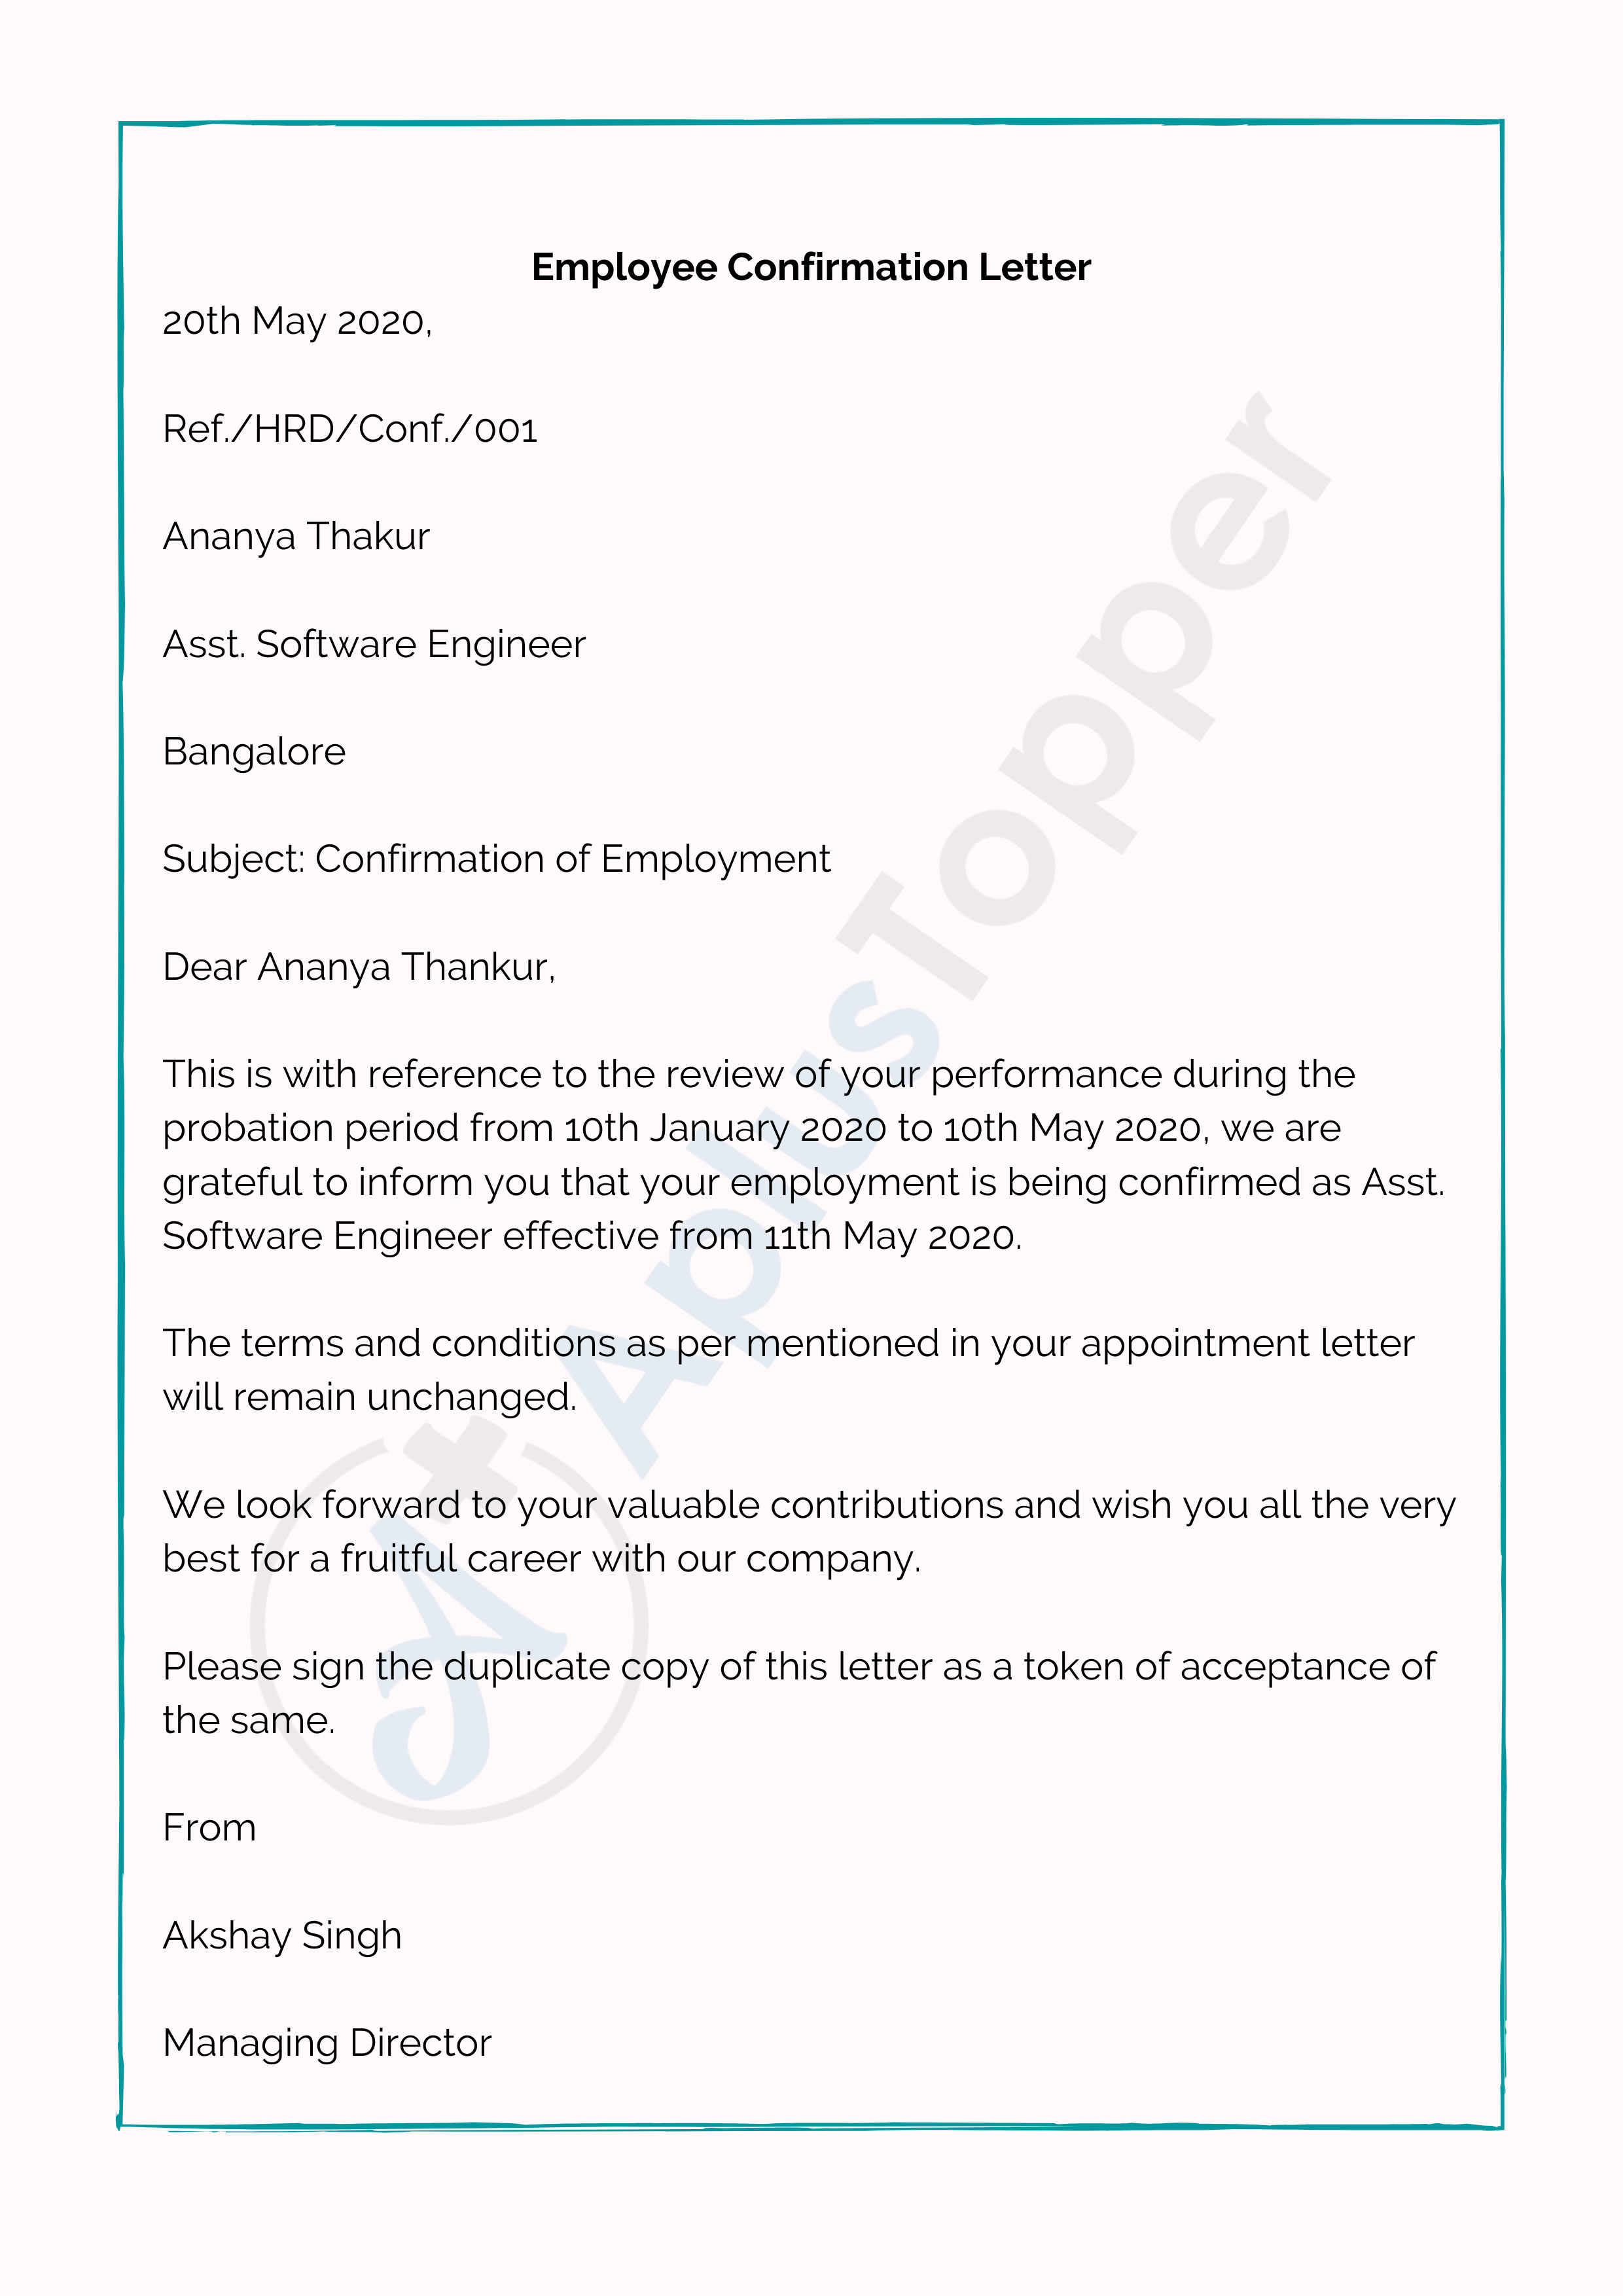 Employee Confirmation Letter